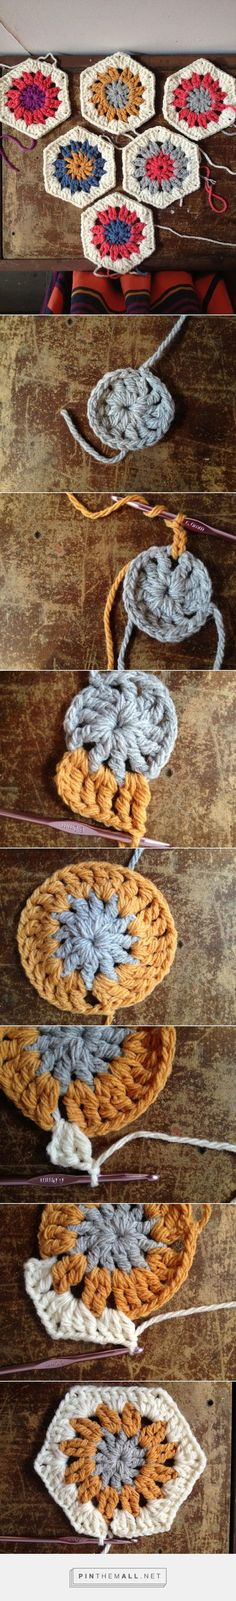 "#Crochet_Tutorial - How To Crochet A Hexagon In Ten Minutes! ""Splendid tutorial with many more pictures and clear text!"" Enjoy from #KnittingGuru ** http://www.pinterest.com/KnittingGuru"